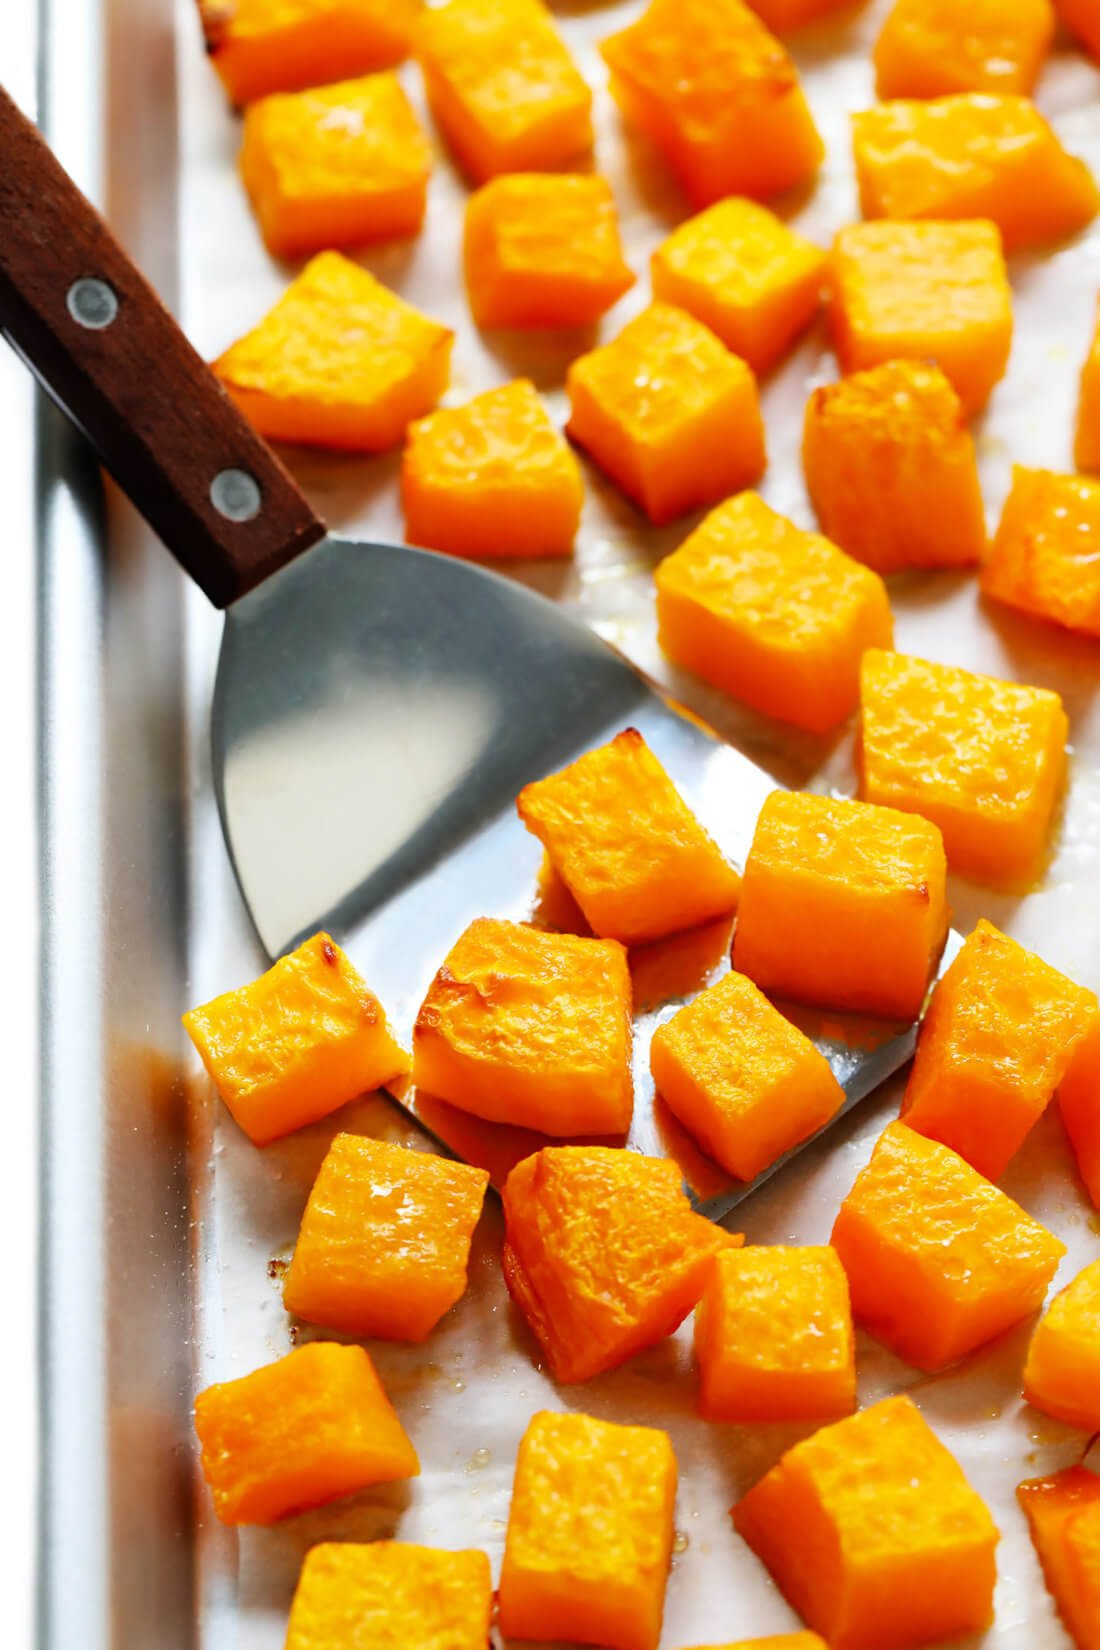 How To Roast Butternut Squash (Diced or Halved)